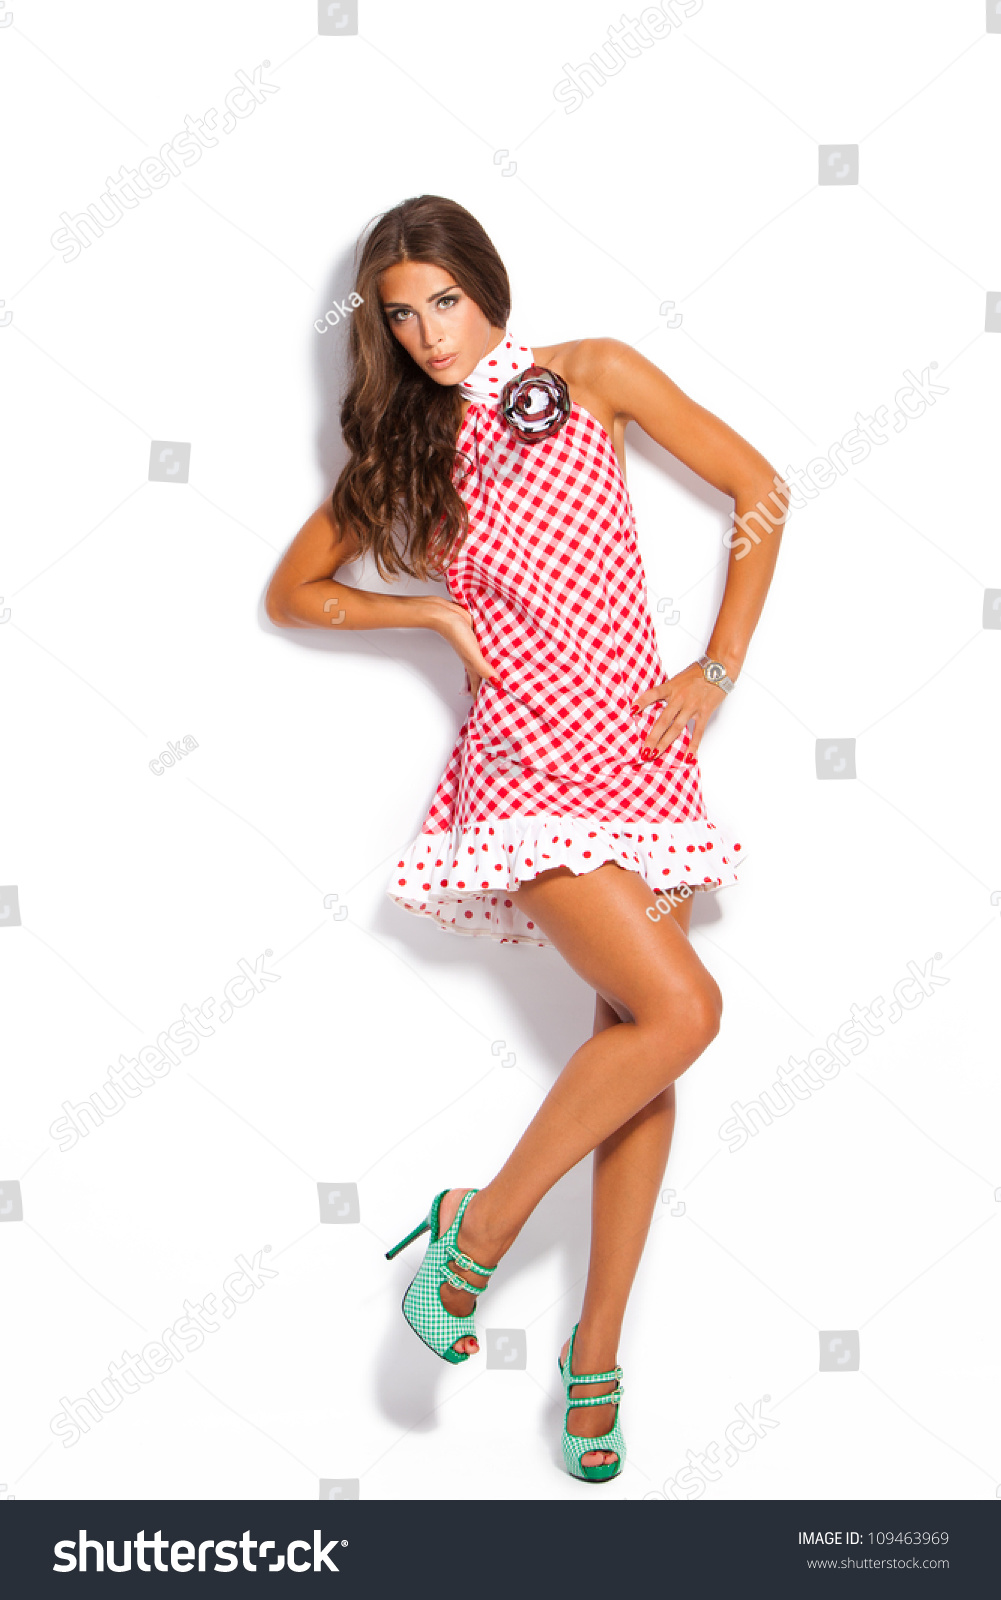 Young Fashion Model Summer Dress High Stock Photo